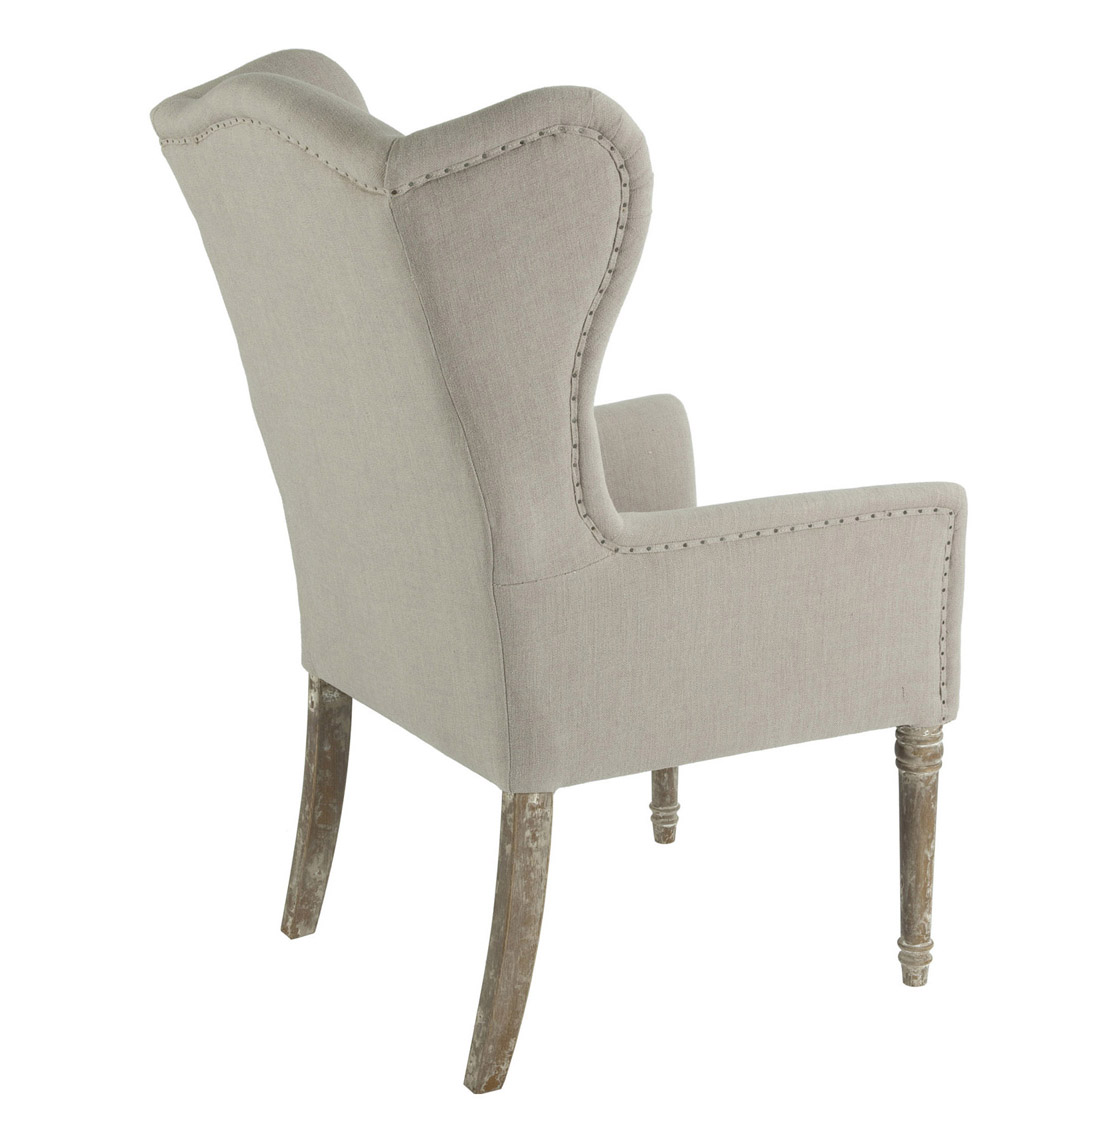 Magnificent Albie Wing Dining Chair Rustic Rattan Wing Back Dining Caraccident5 Cool Chair Designs And Ideas Caraccident5Info